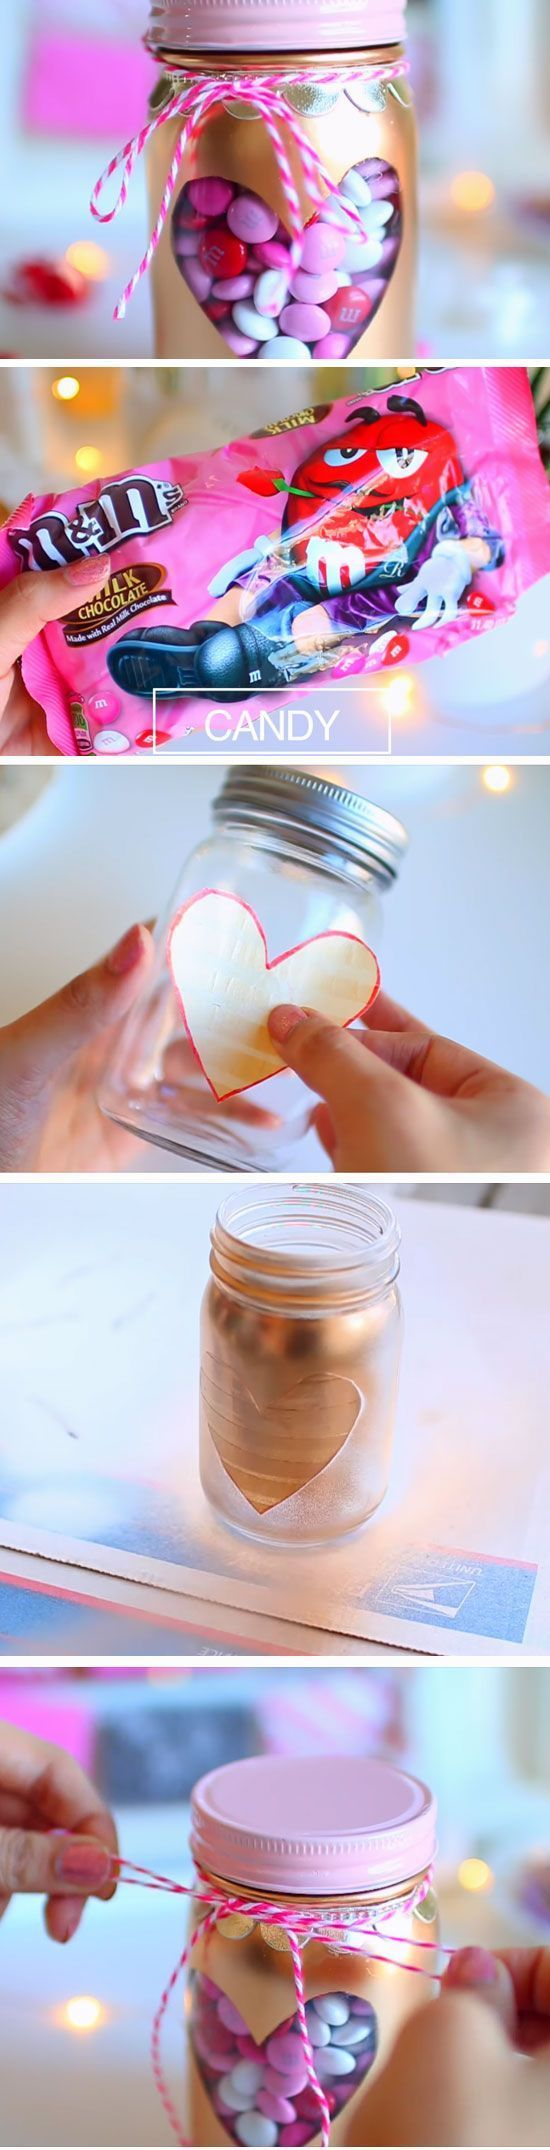 Candy jar diy valentines day gifts for him cheap valentines